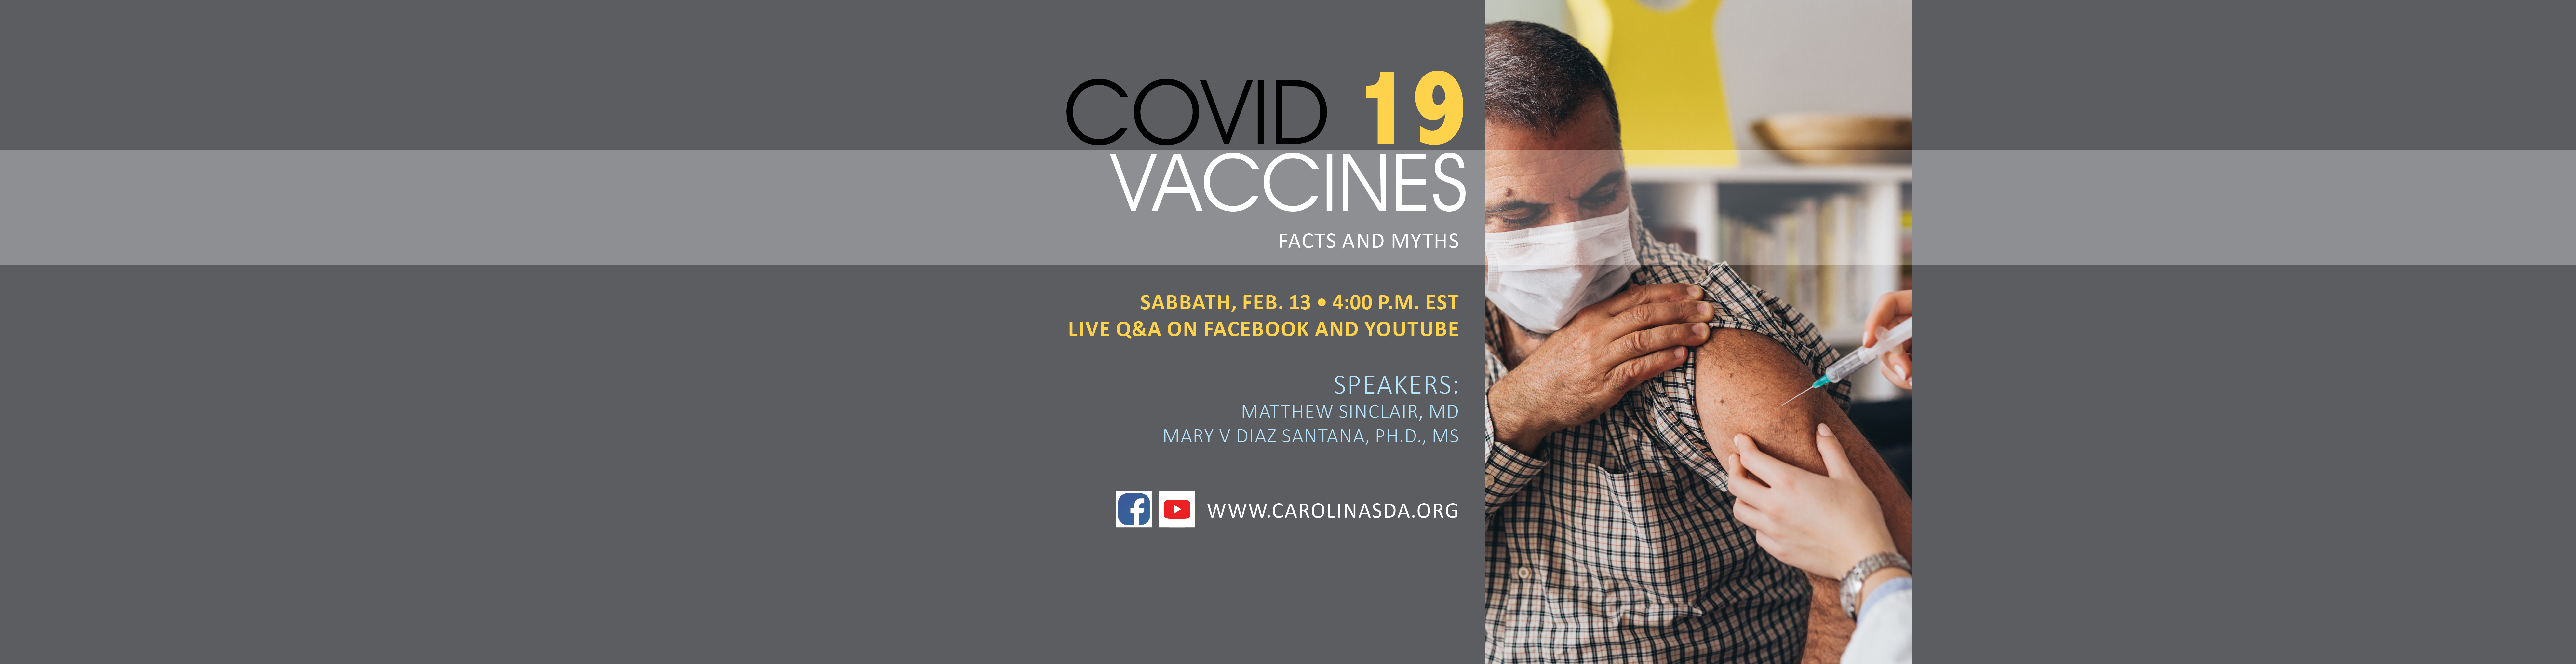 Vaccine Health Event web banner